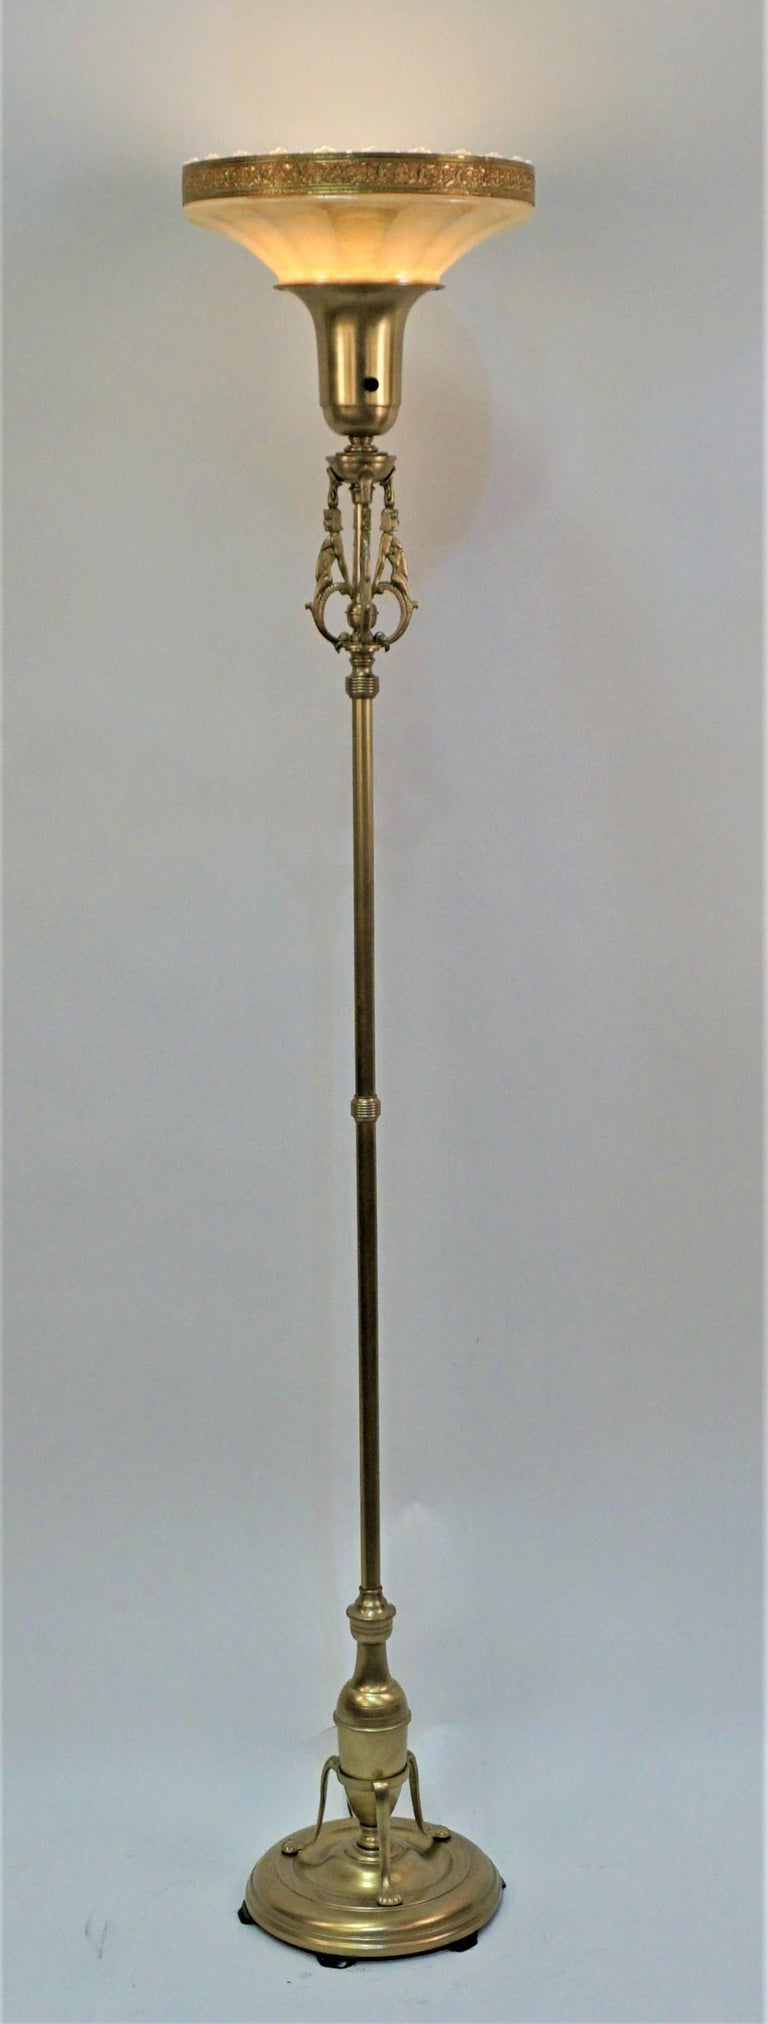 American brass 1920s torchiere floor lamp with glass shade. 3way socket up 300 watts.